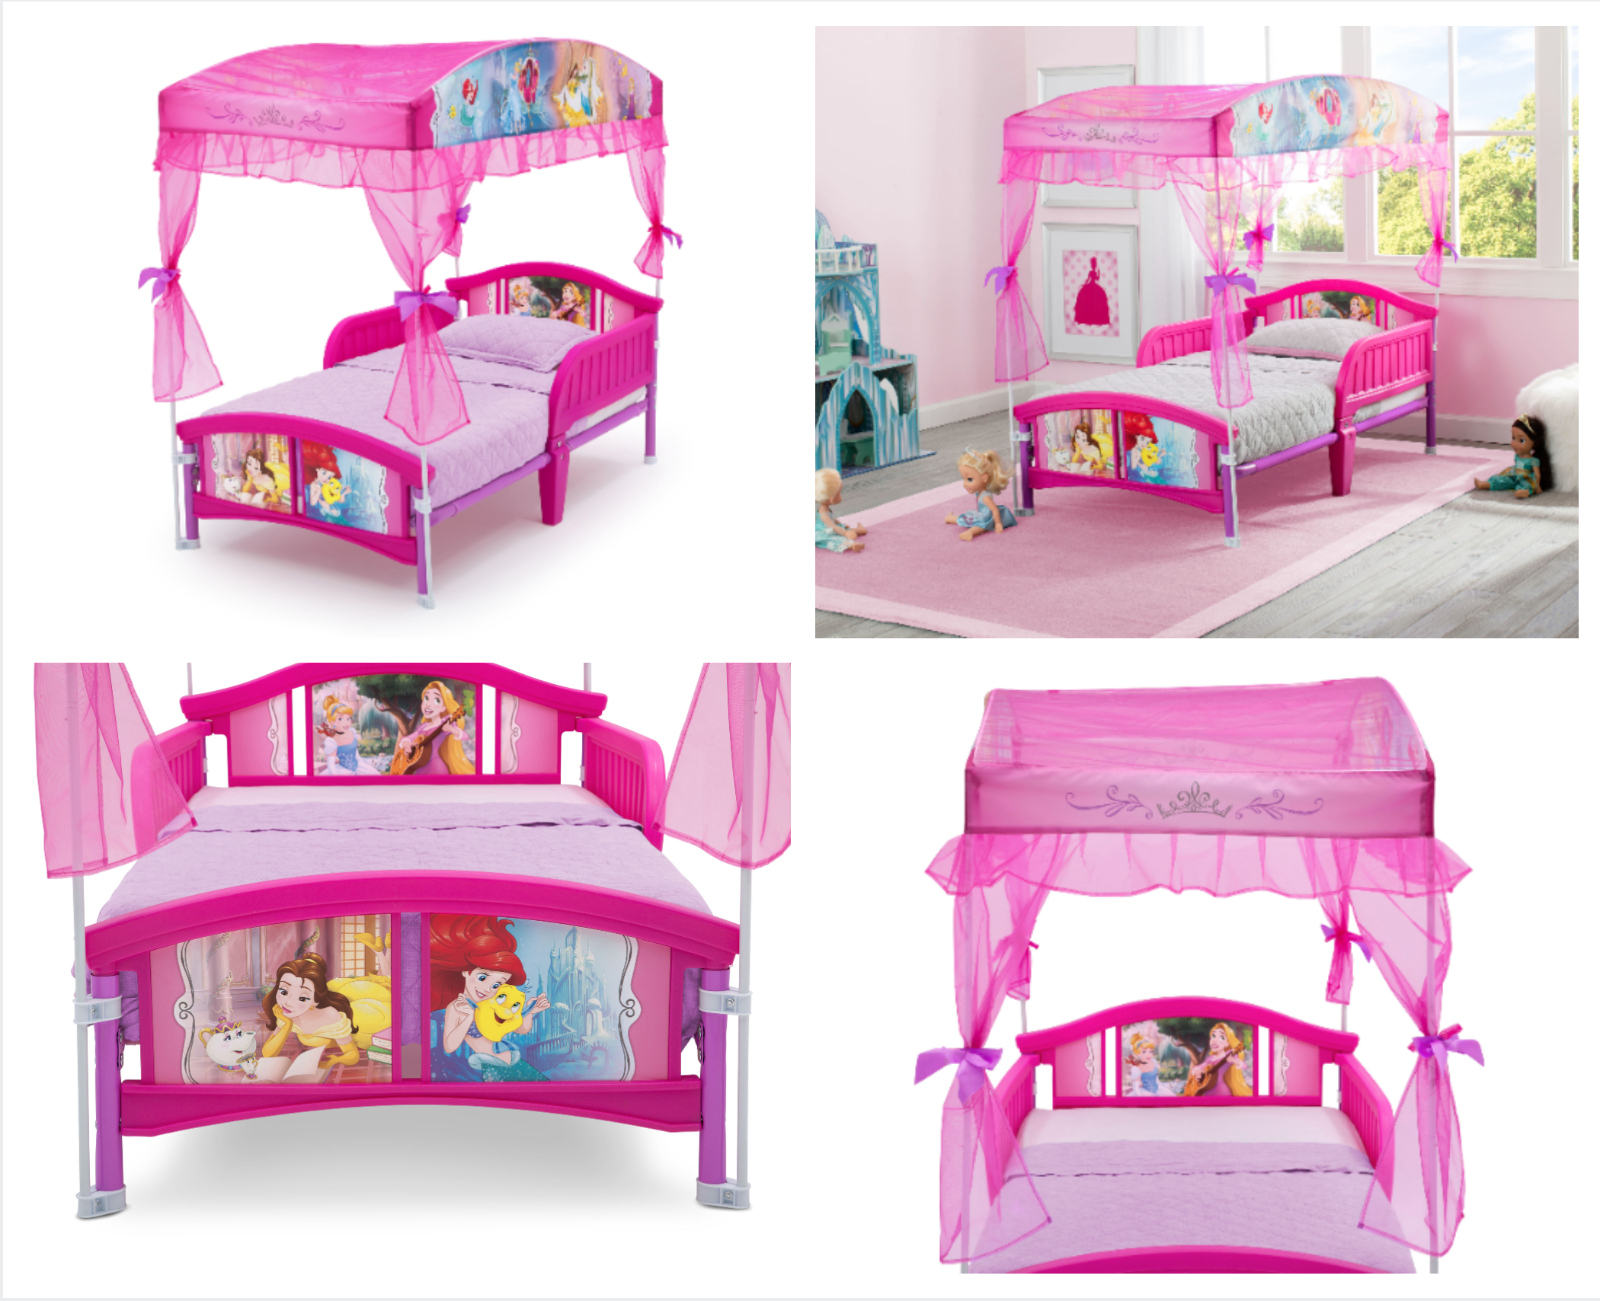 Toddler Bedroom Furniture Set Disney Princess Room Bed Toy For Sale Online Ebay